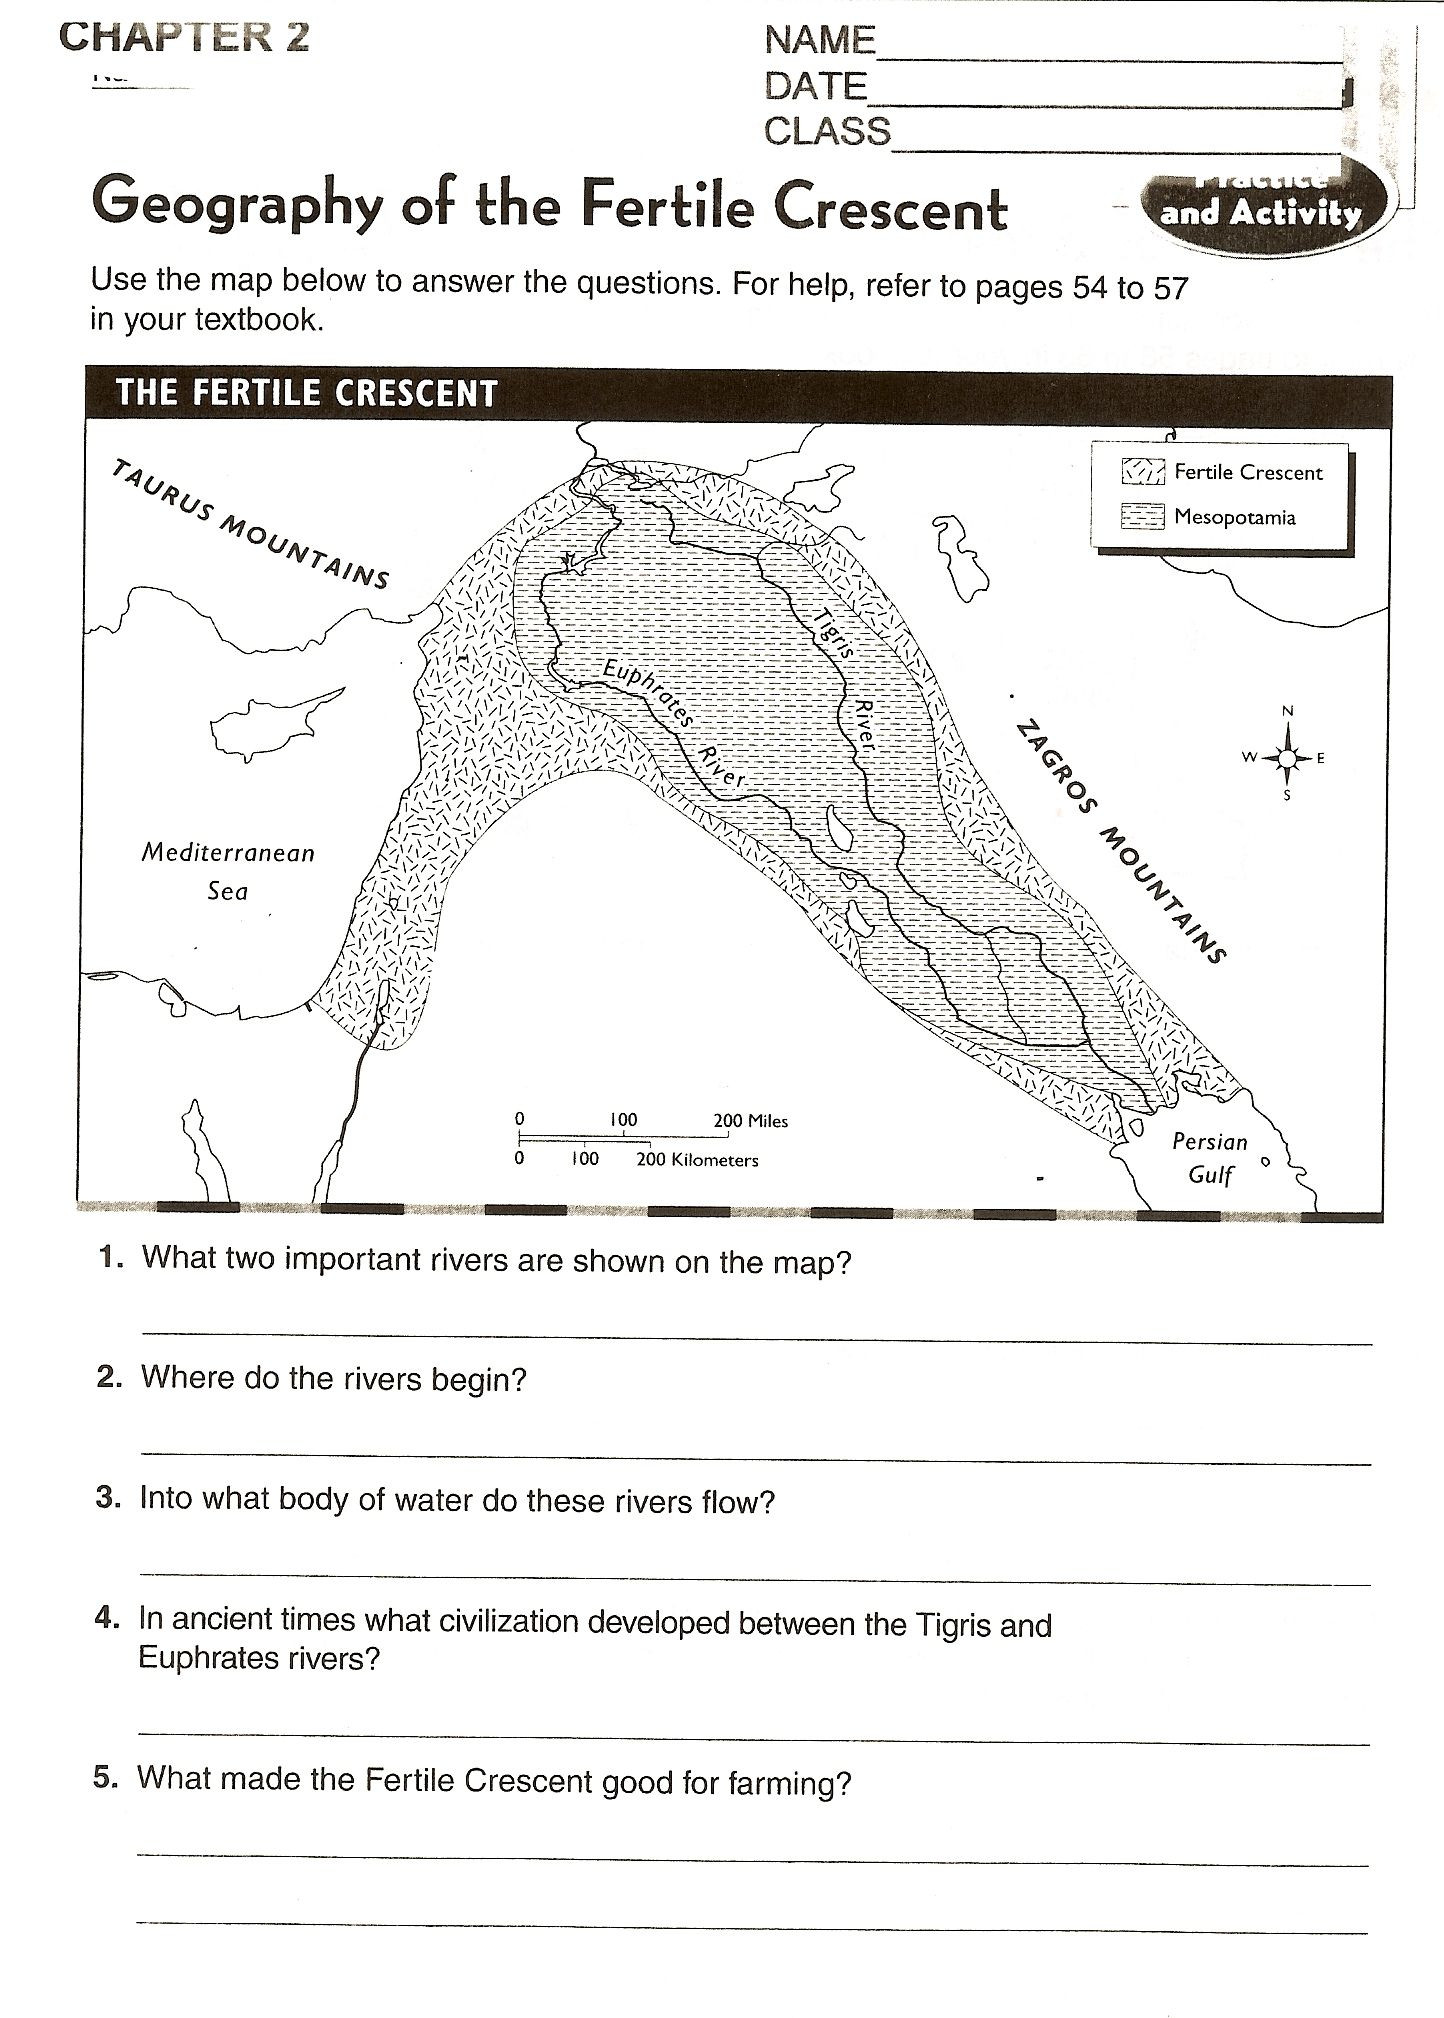 River Valley Civilizations Worksheet Answers Chapter 2 Mesopotamia